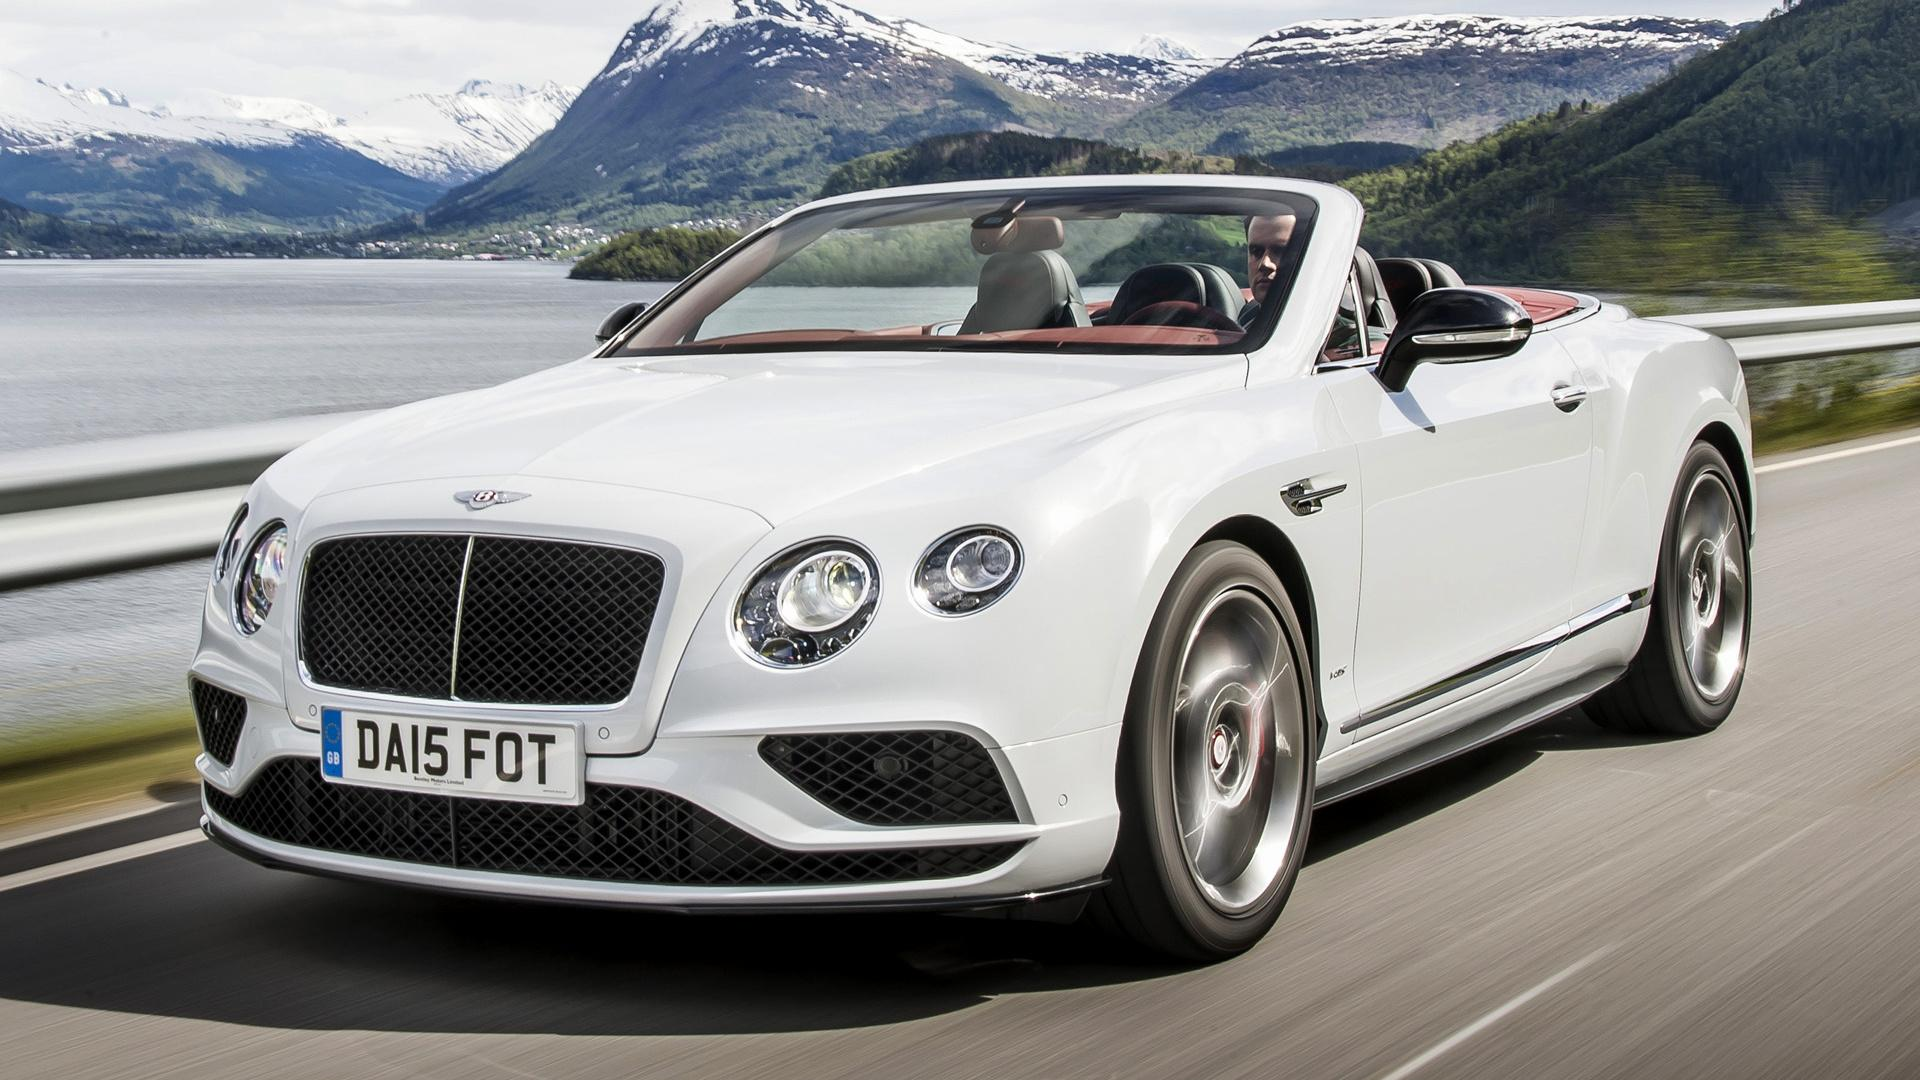 All in One Wallpapers: Bentley Continental GT V8 S Convertible 2015